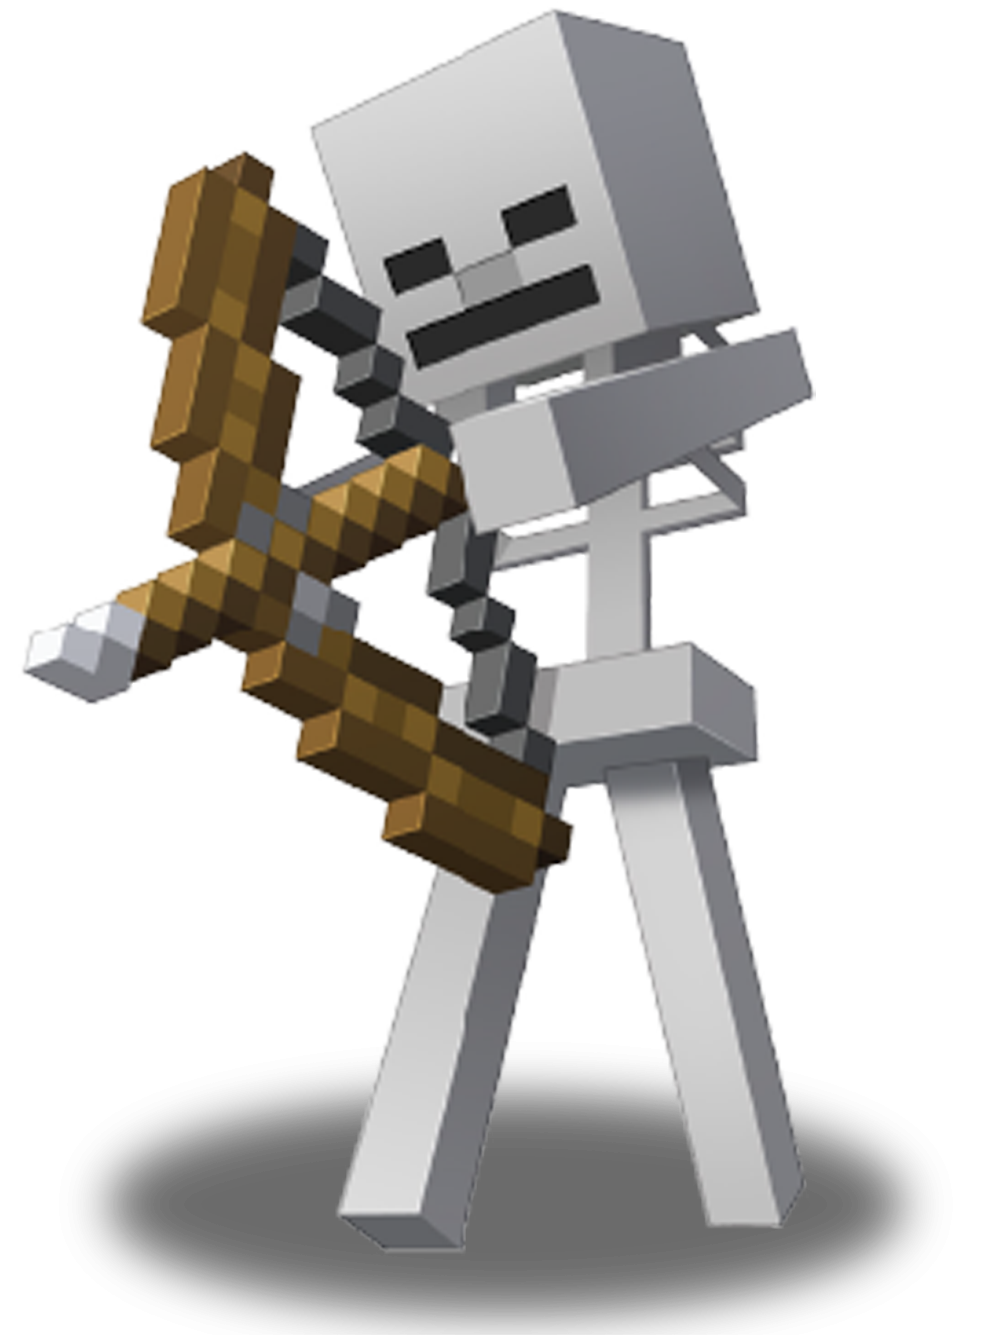 A Minecraft skeleton